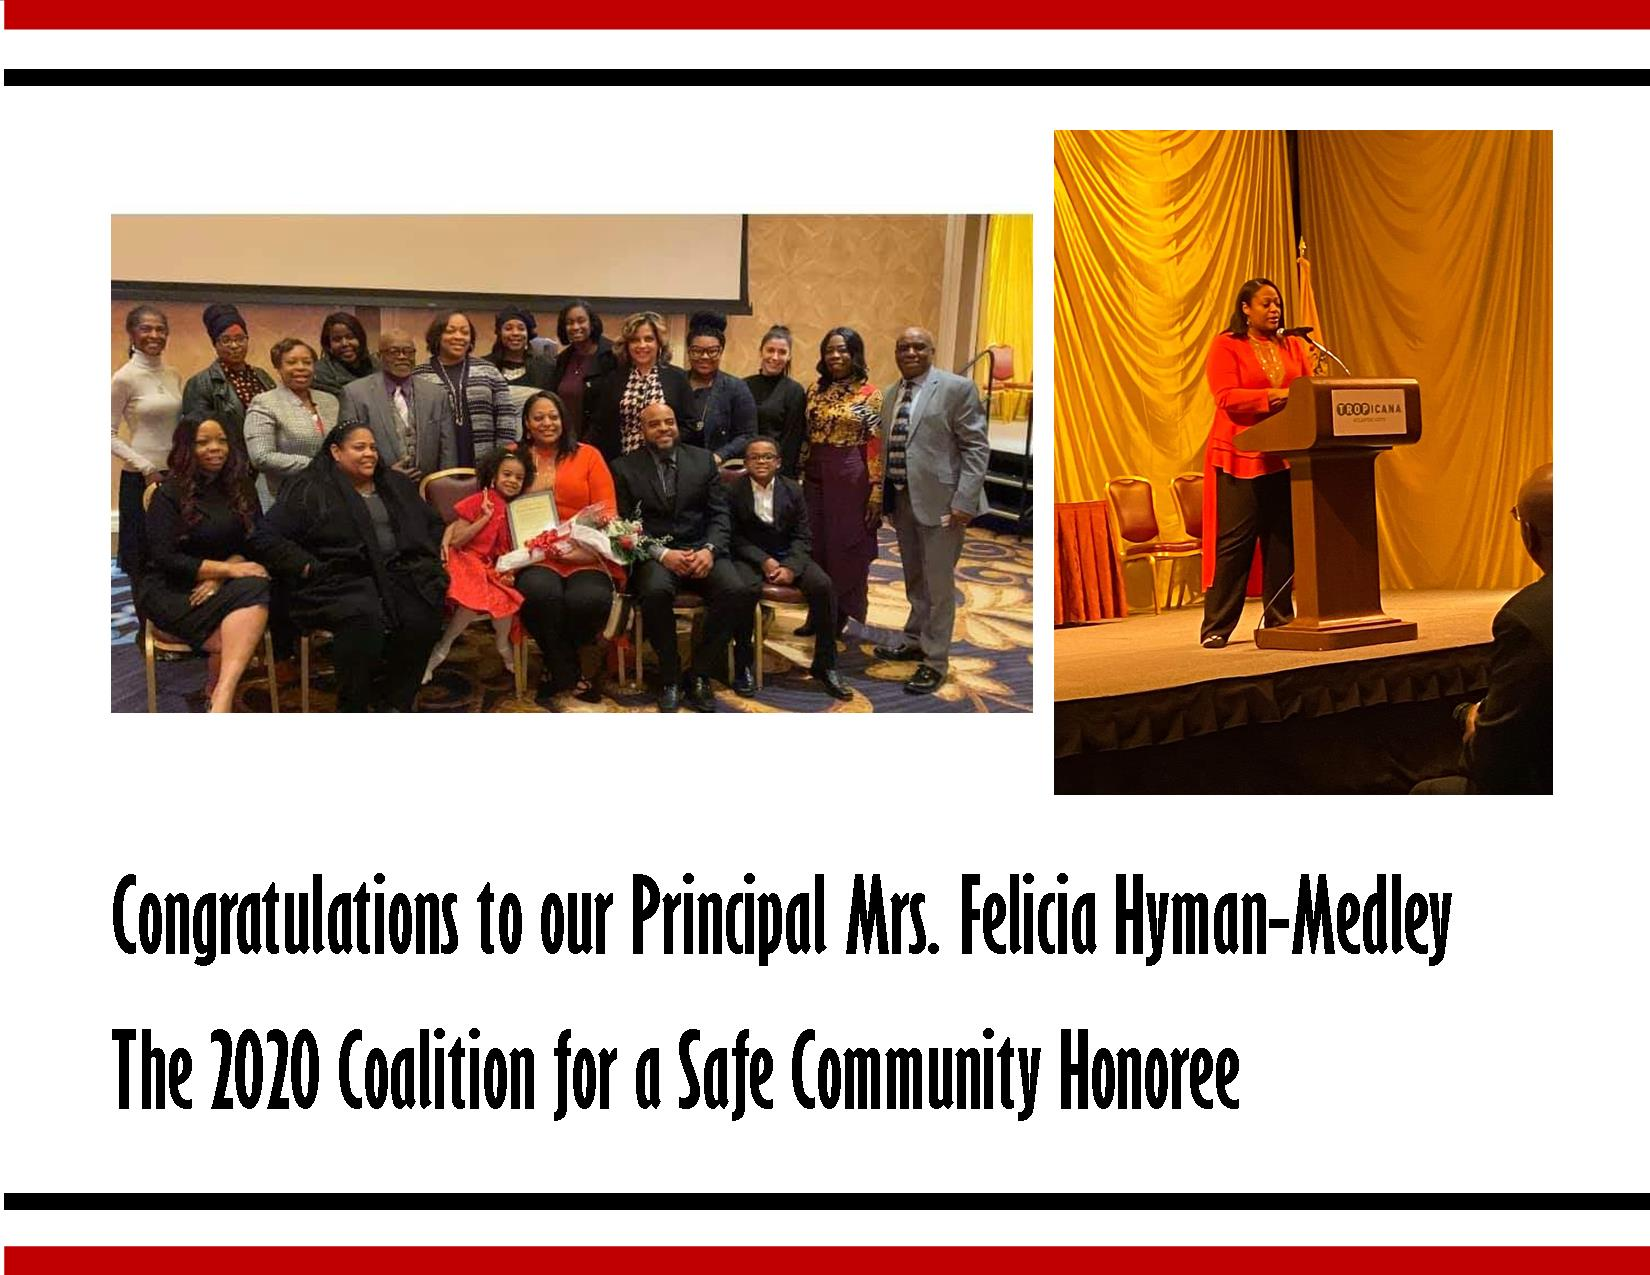 Congratulations to our Principal Mrs. Felicia Hyman-Medley The 2020 Coalition for a Safe Community Honoree